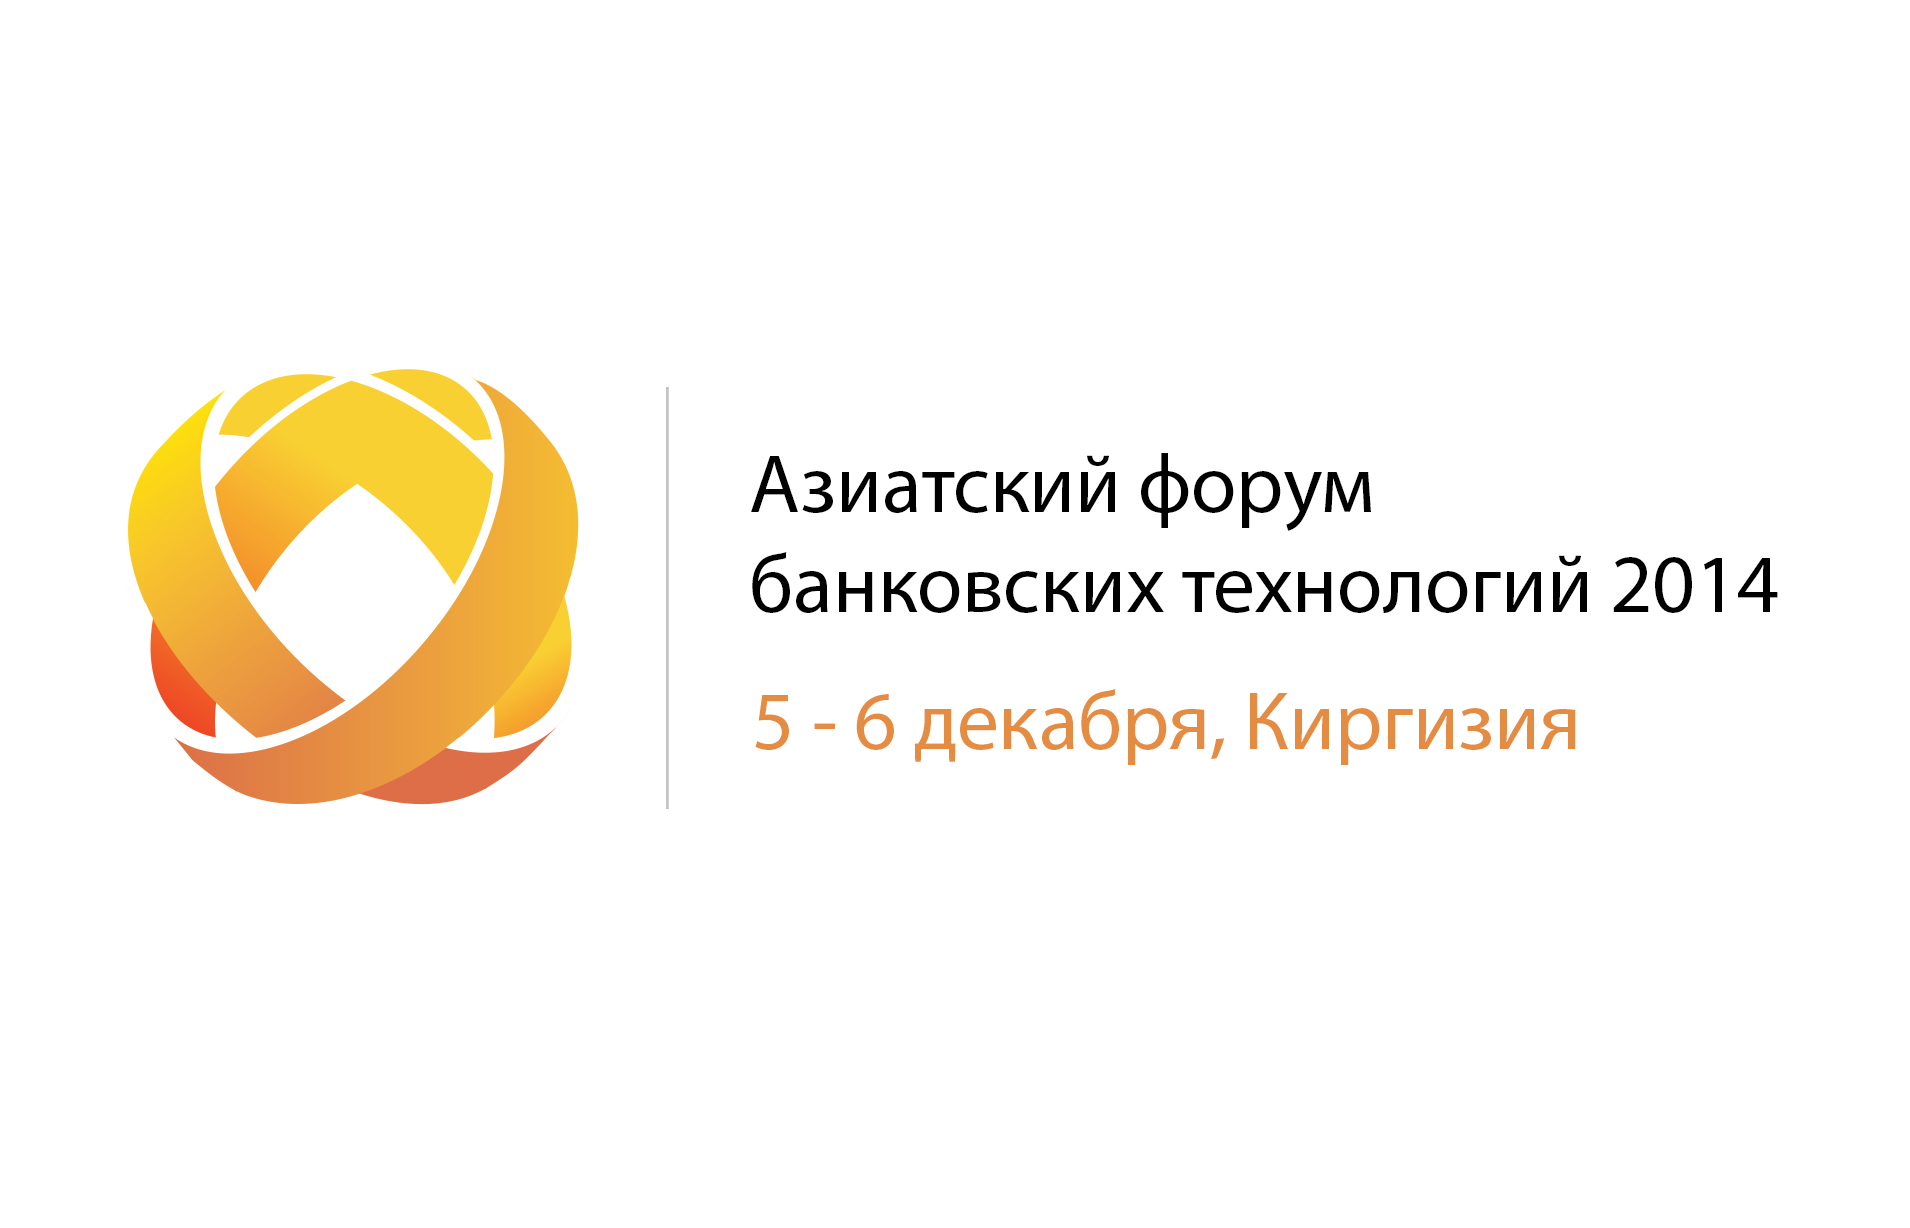 Asian Forum on Banking Technologies 2014 held in Kyrgyzstan